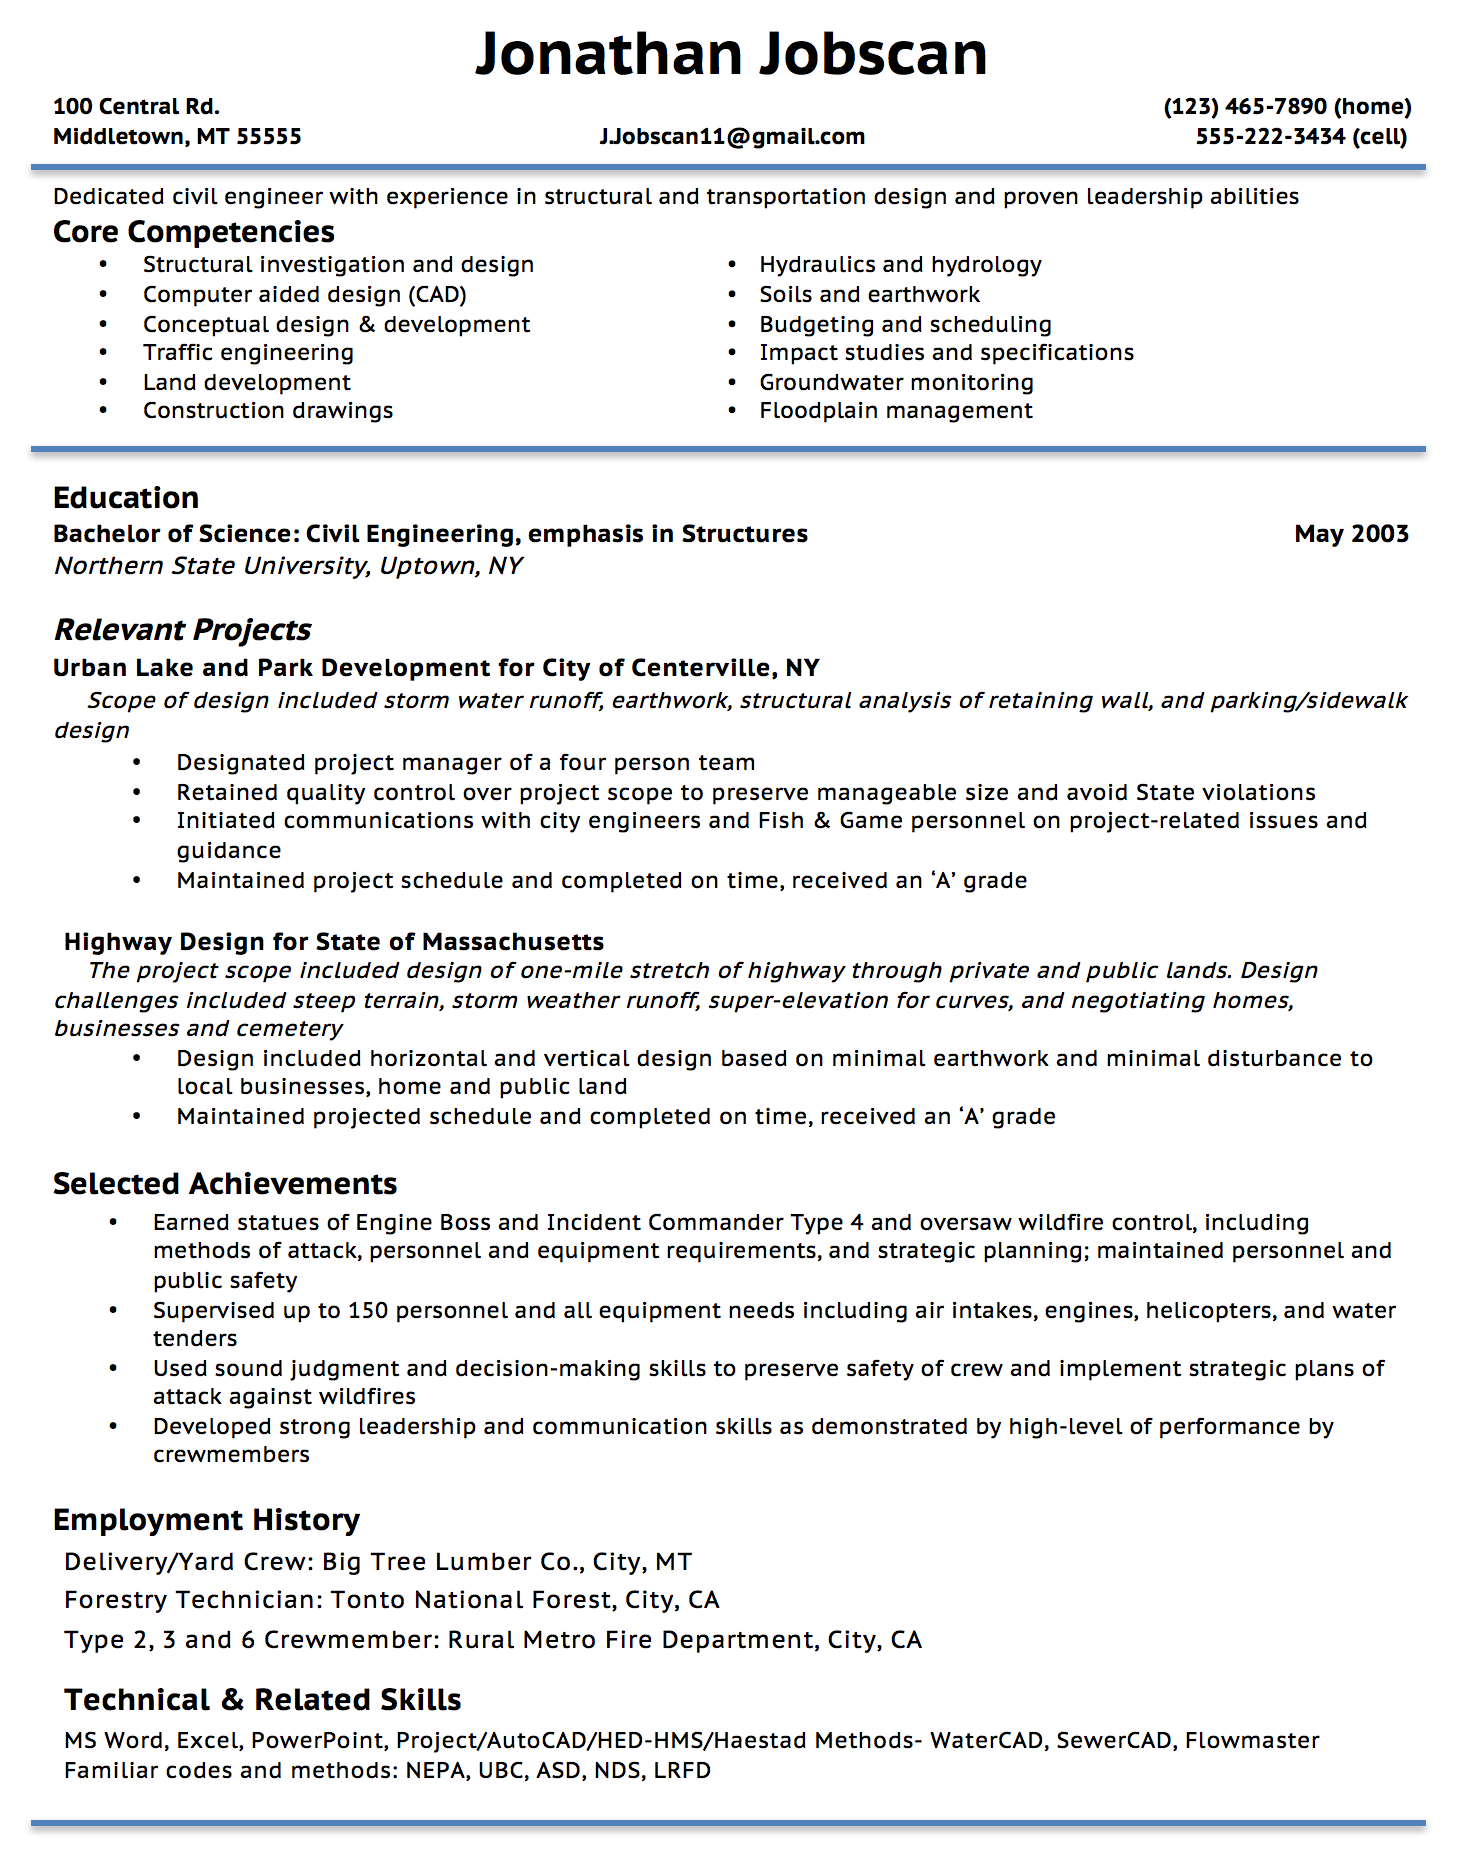 Picnictoimpeachus  Scenic Resume Writing Guide  Jobscan With Outstanding Example Of A Functional Resume Format With Astonishing Word Resume Template  Also Example Professional Resume In Addition Sales Associate Resume Example And Java Resume Sample As Well As Resume Services Review Additionally Warehouse Resume Template From Jobscanco With Picnictoimpeachus  Outstanding Resume Writing Guide  Jobscan With Astonishing Example Of A Functional Resume Format And Scenic Word Resume Template  Also Example Professional Resume In Addition Sales Associate Resume Example From Jobscanco